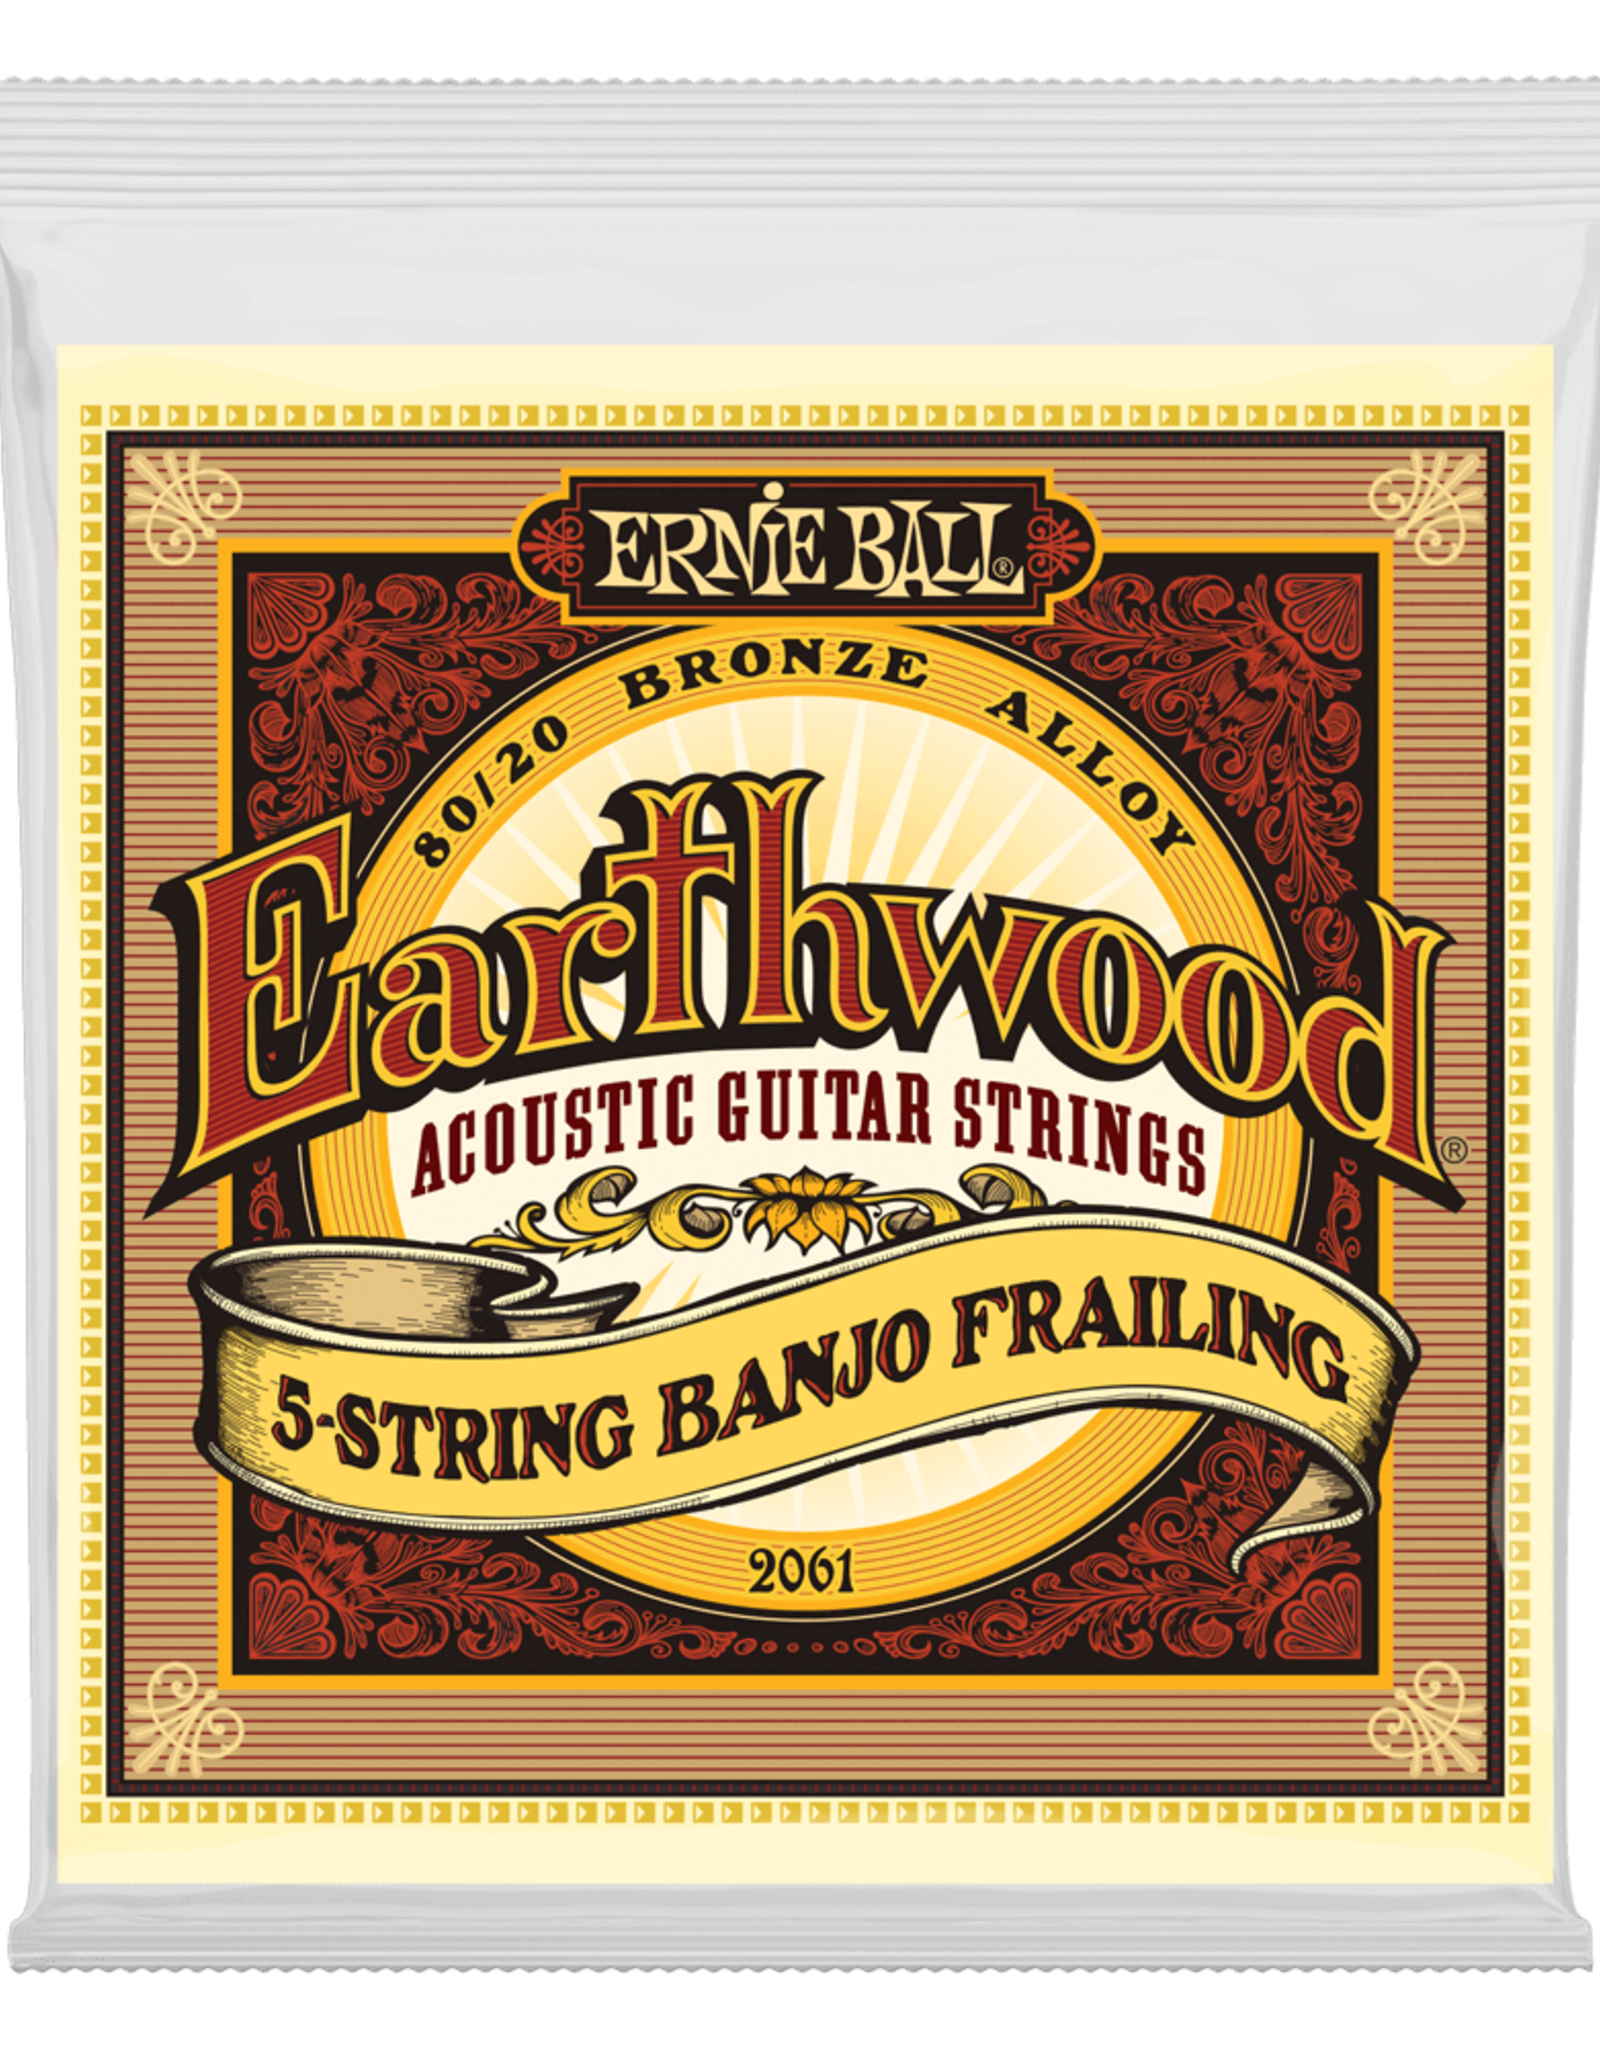 Ernie Ball Earthwood 5-String Banjo Frailing Loop End 80/20 Bronze Acoustic Guitar Strings